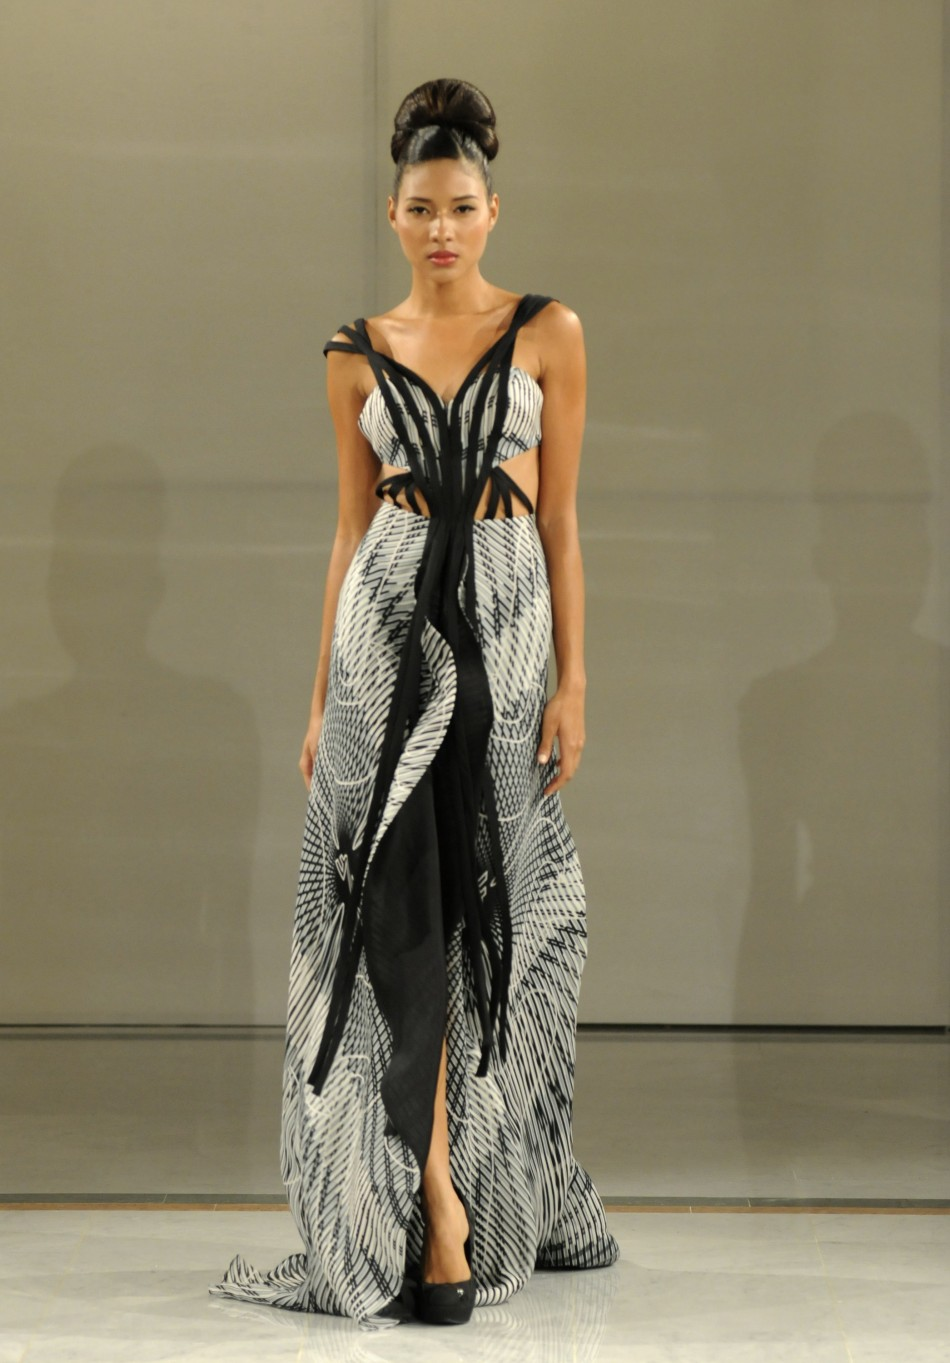 A model presents a creation by Venezuelan designer Nicolas Felizola during Caribbean Fashion Week RD 2012 in Santo Domingo